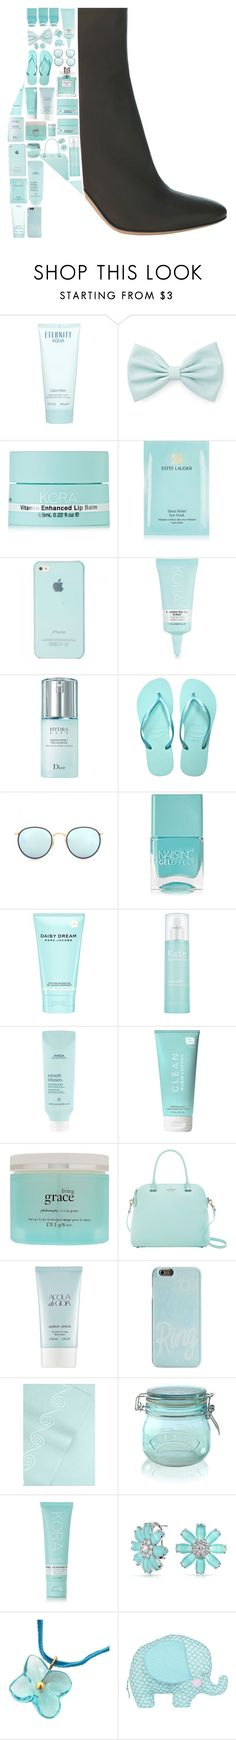 """My Beautiful Aqua Ankle Book!"" by stelbell ❤ liked on Polyvore featuring Calvin Klein, Forever 21, KORA Organics by Miranda Kerr, Estée Lauder, Christian Dior, Havaianas, Ray-Ban, Nails Inc., Marc Jacobs and Kate Somerville"